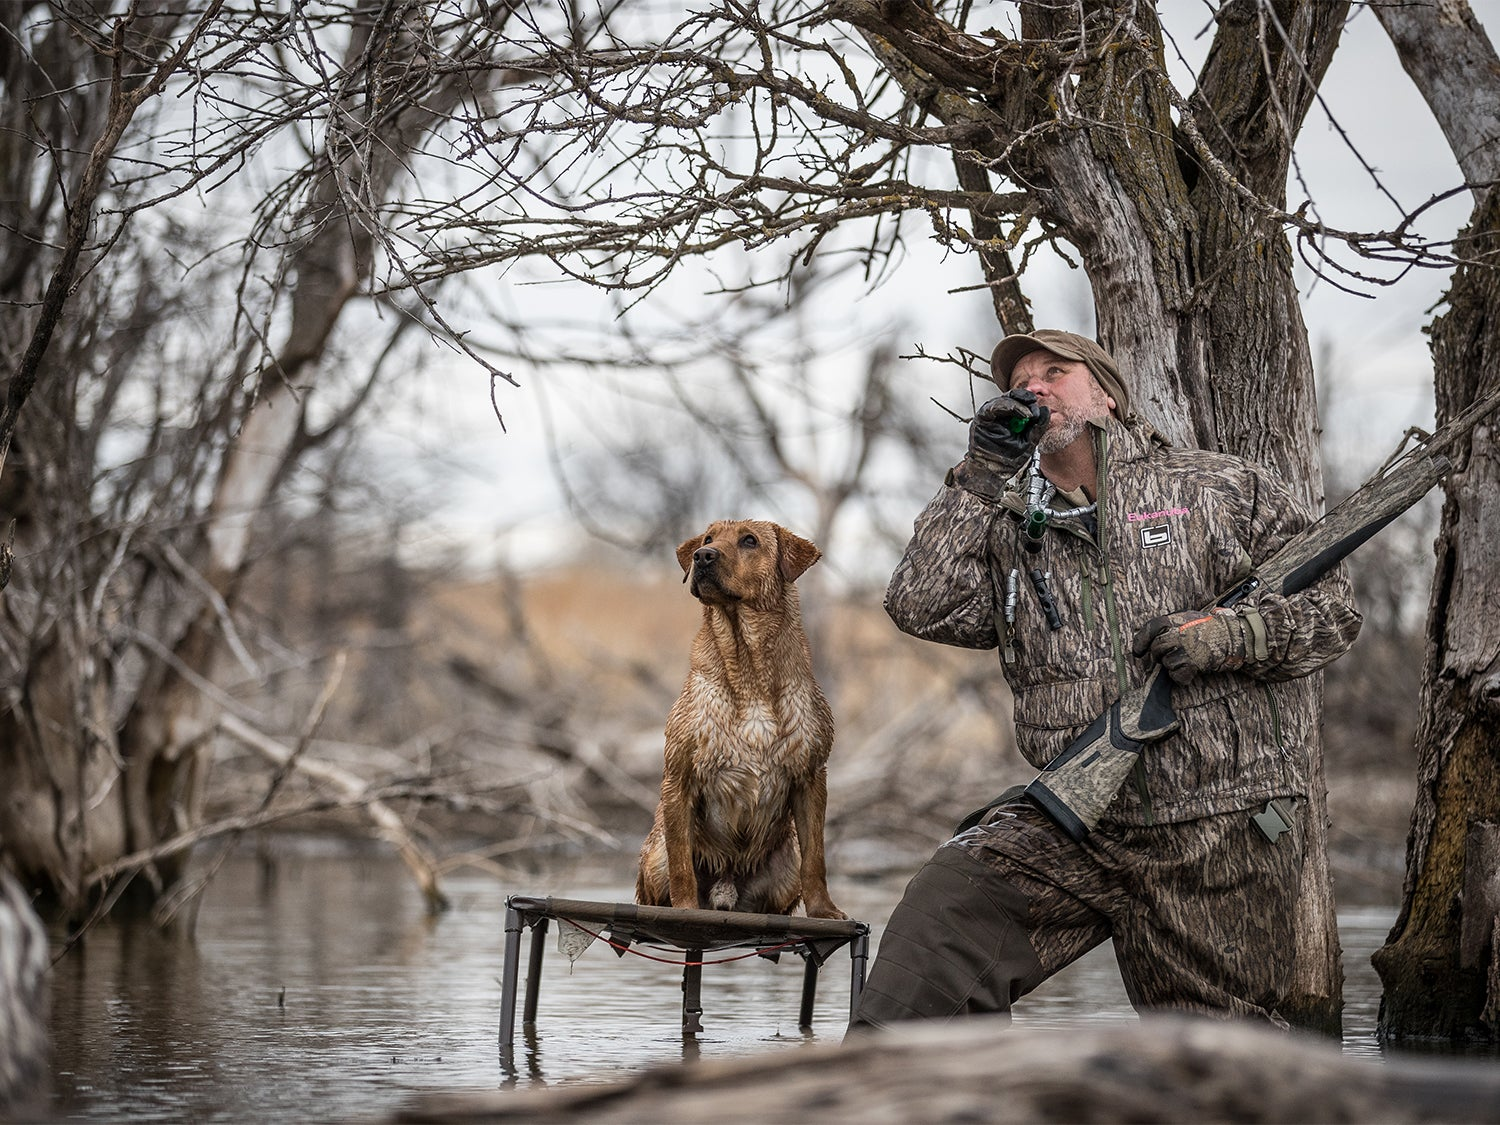 A hunter wading in the water on a duck call.